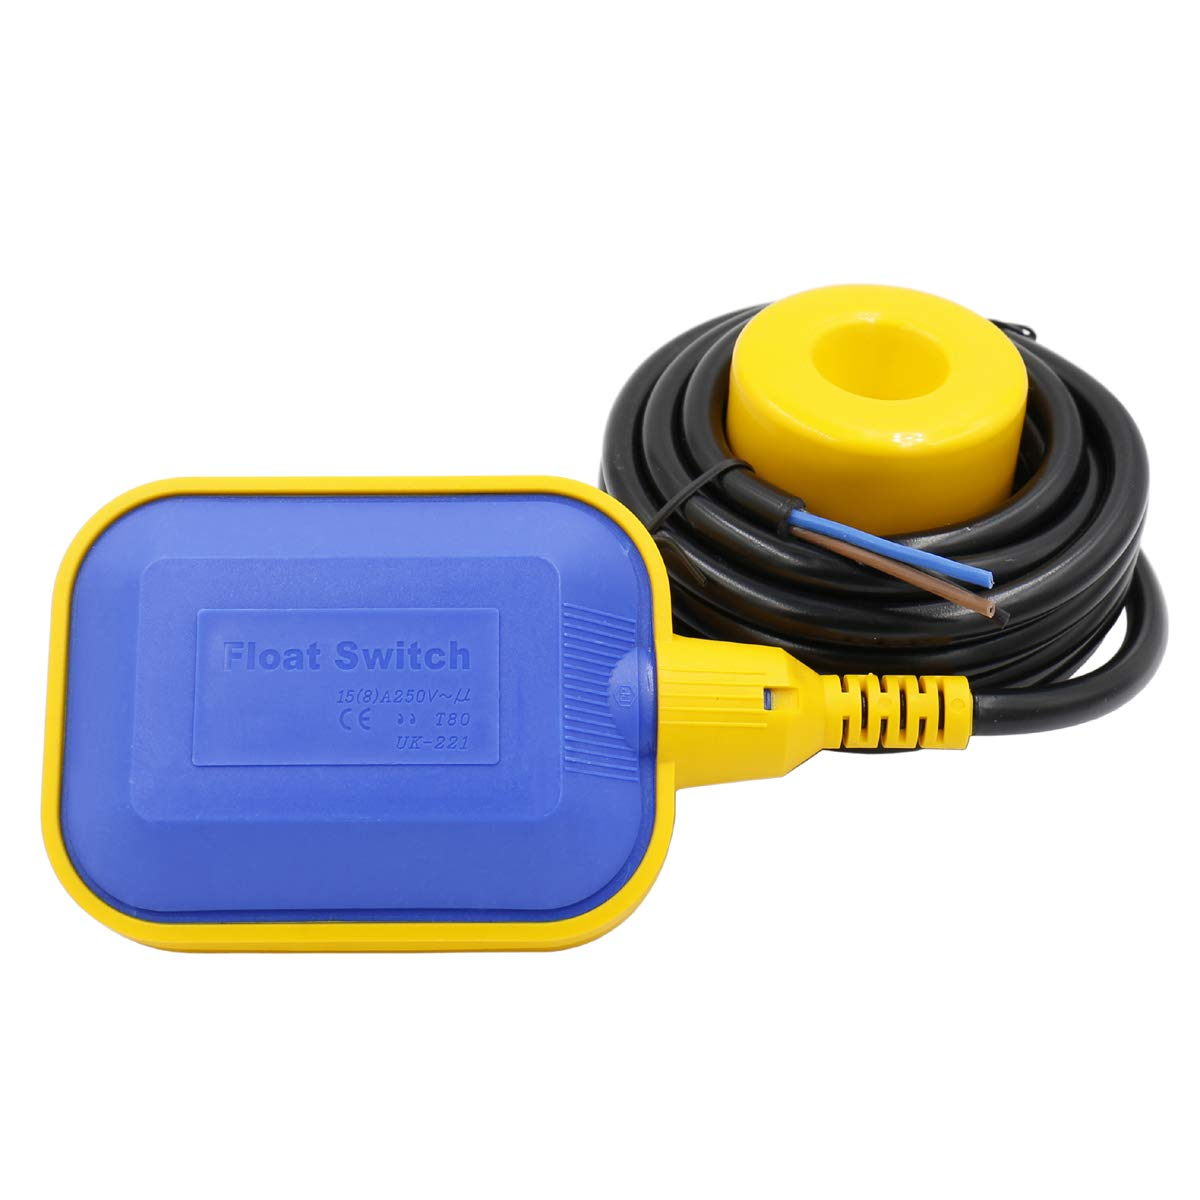 Heschen Float Switch 4M Cable Water Level Controller for Water Tank, Sump Pump